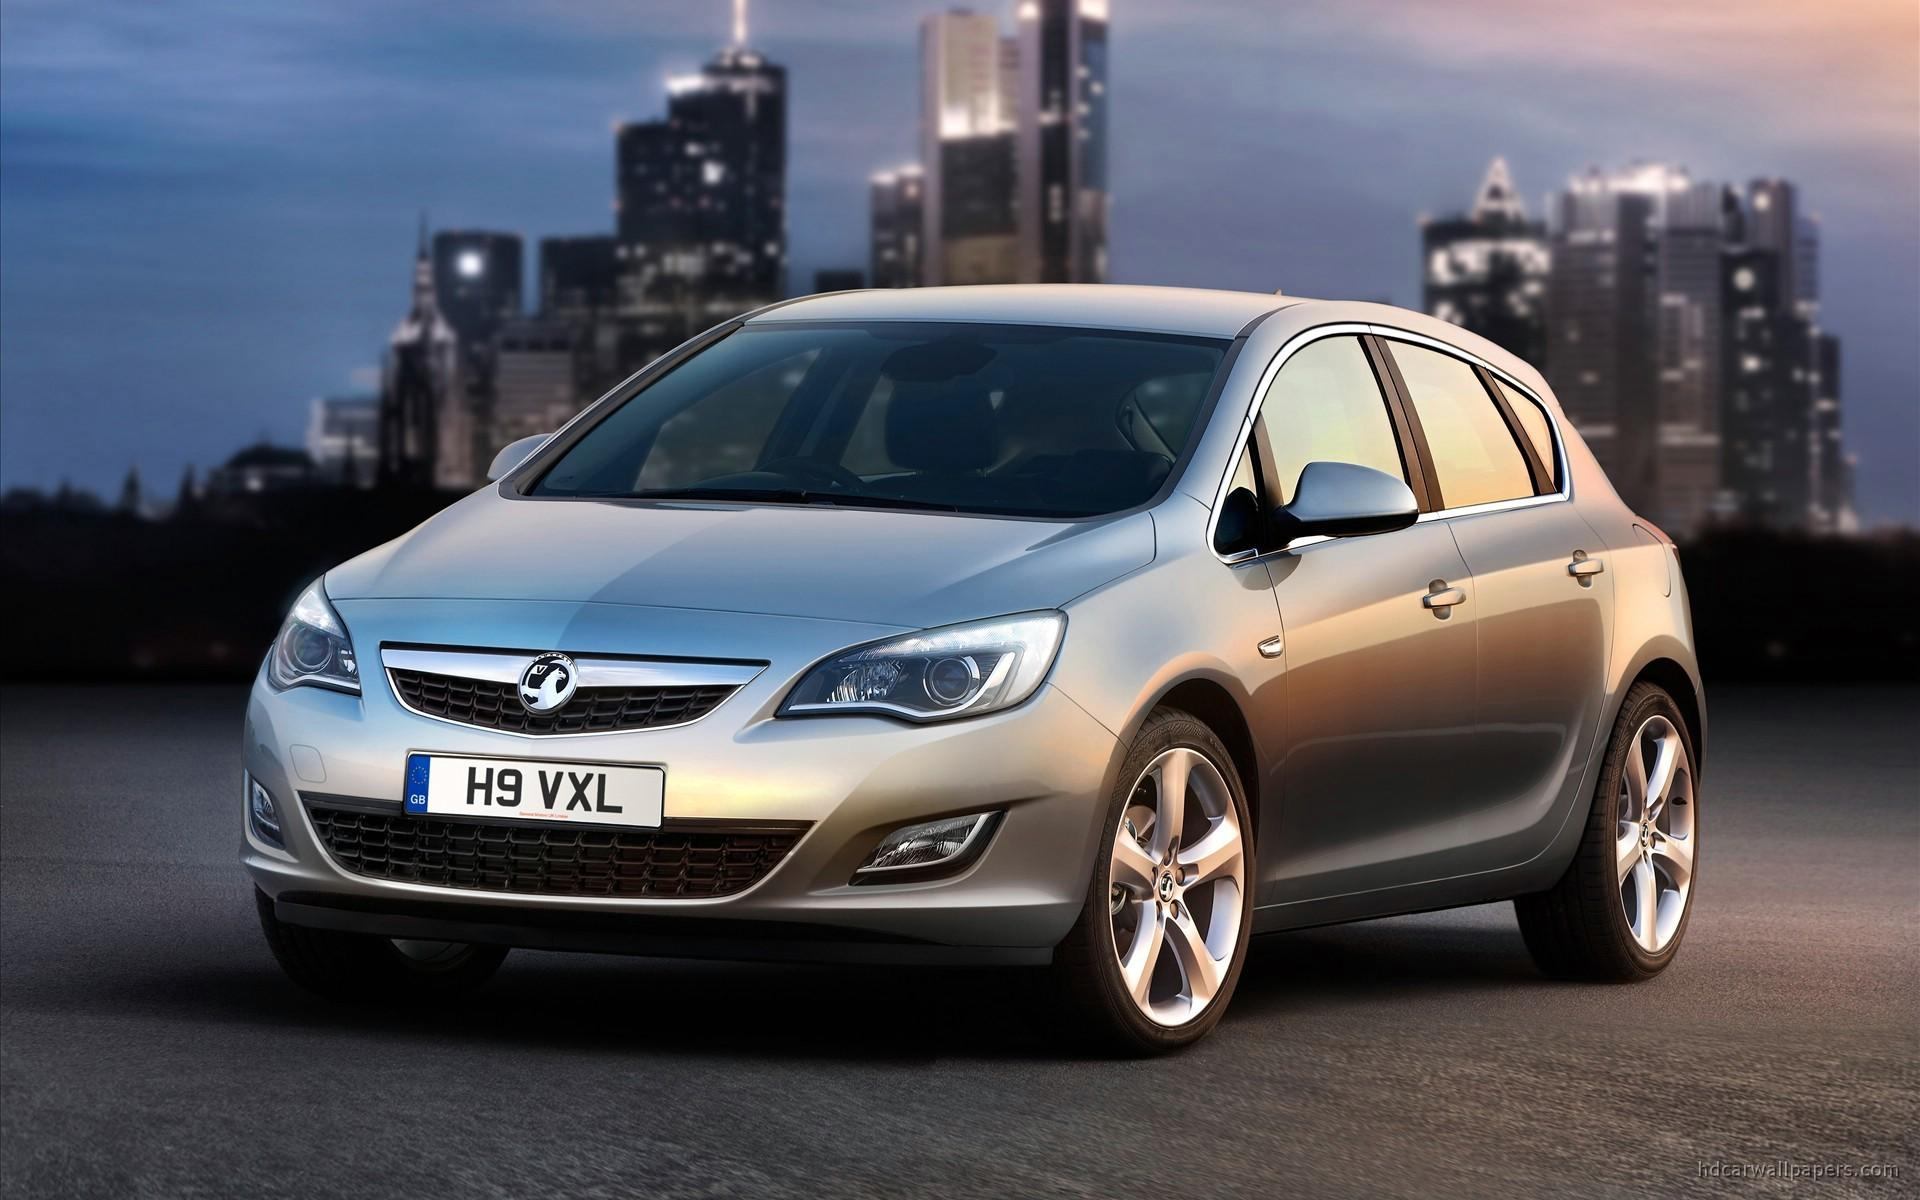 2010 Vauxhall Astra Wallpaper | HD Car Wallpapers | ID #1283